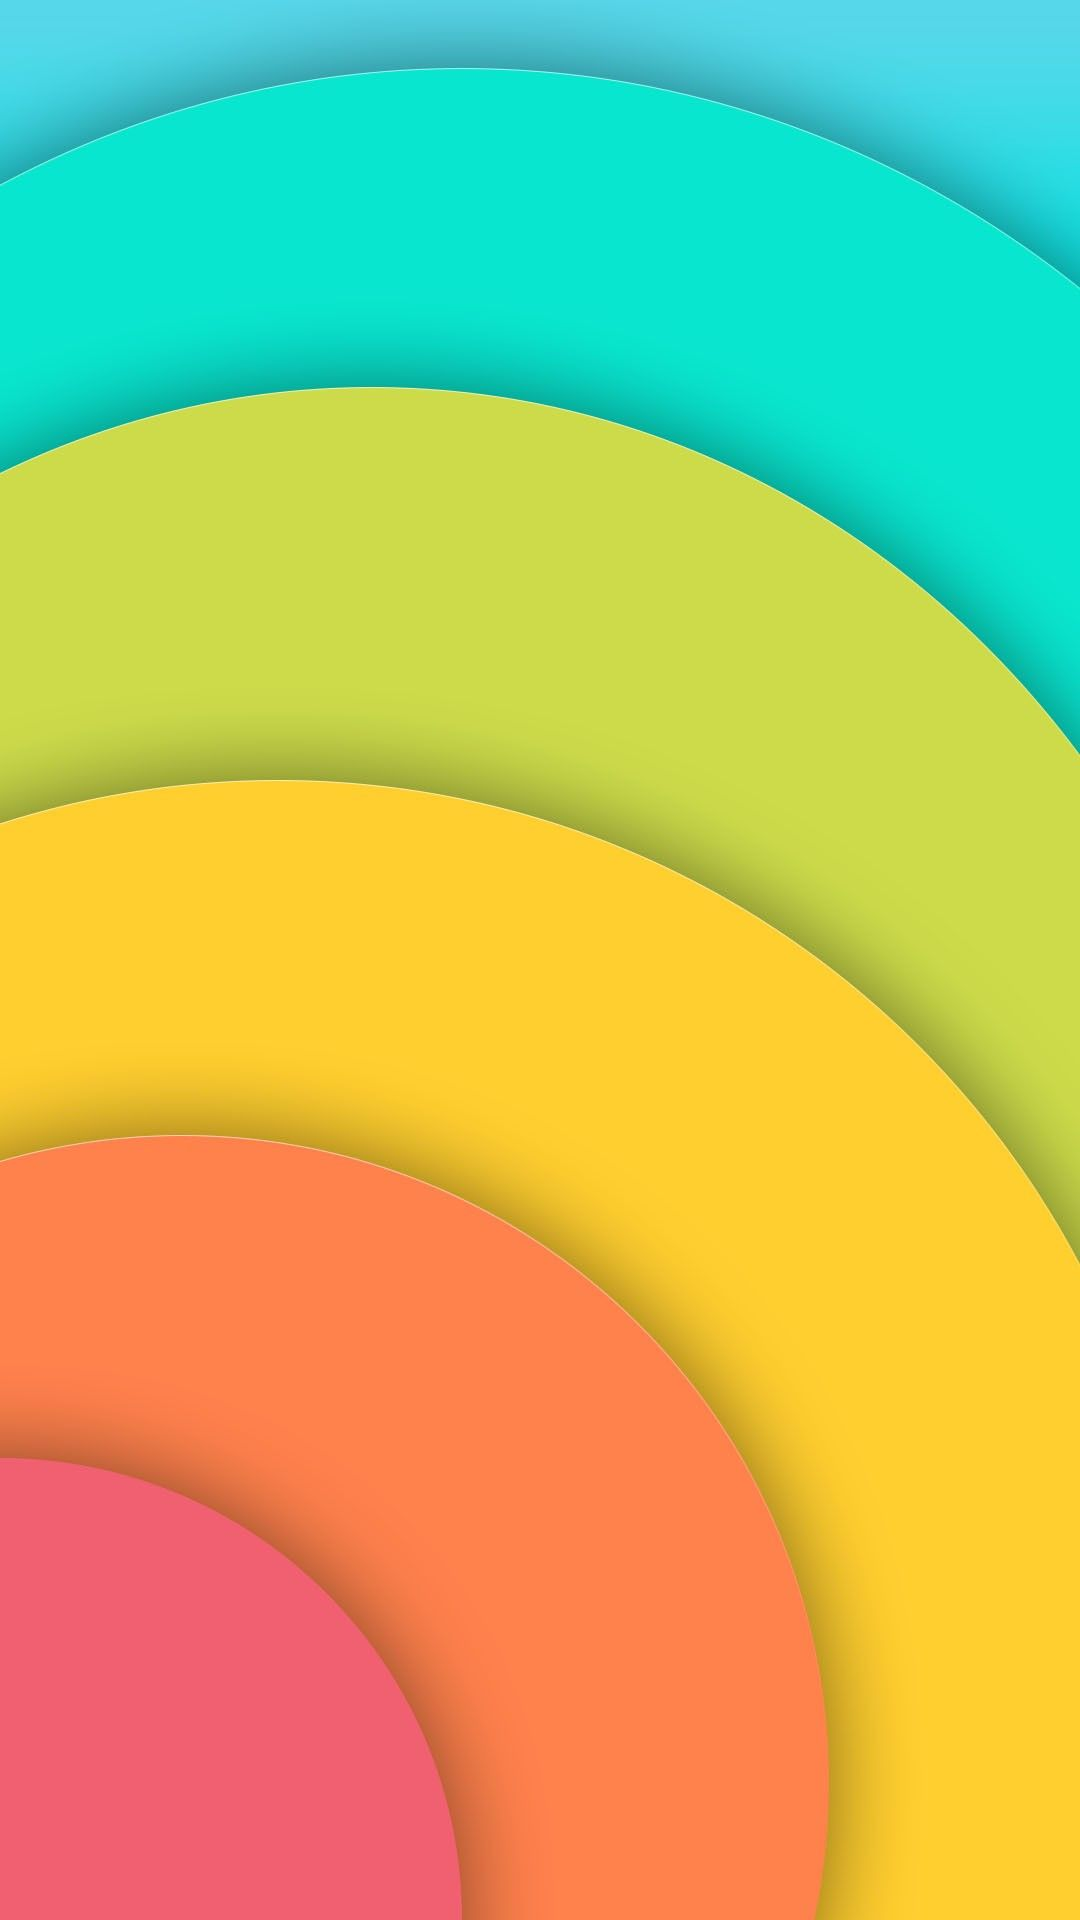 Colorful Half Circles Well | *Abstract and Geometric Wallpapers in ...